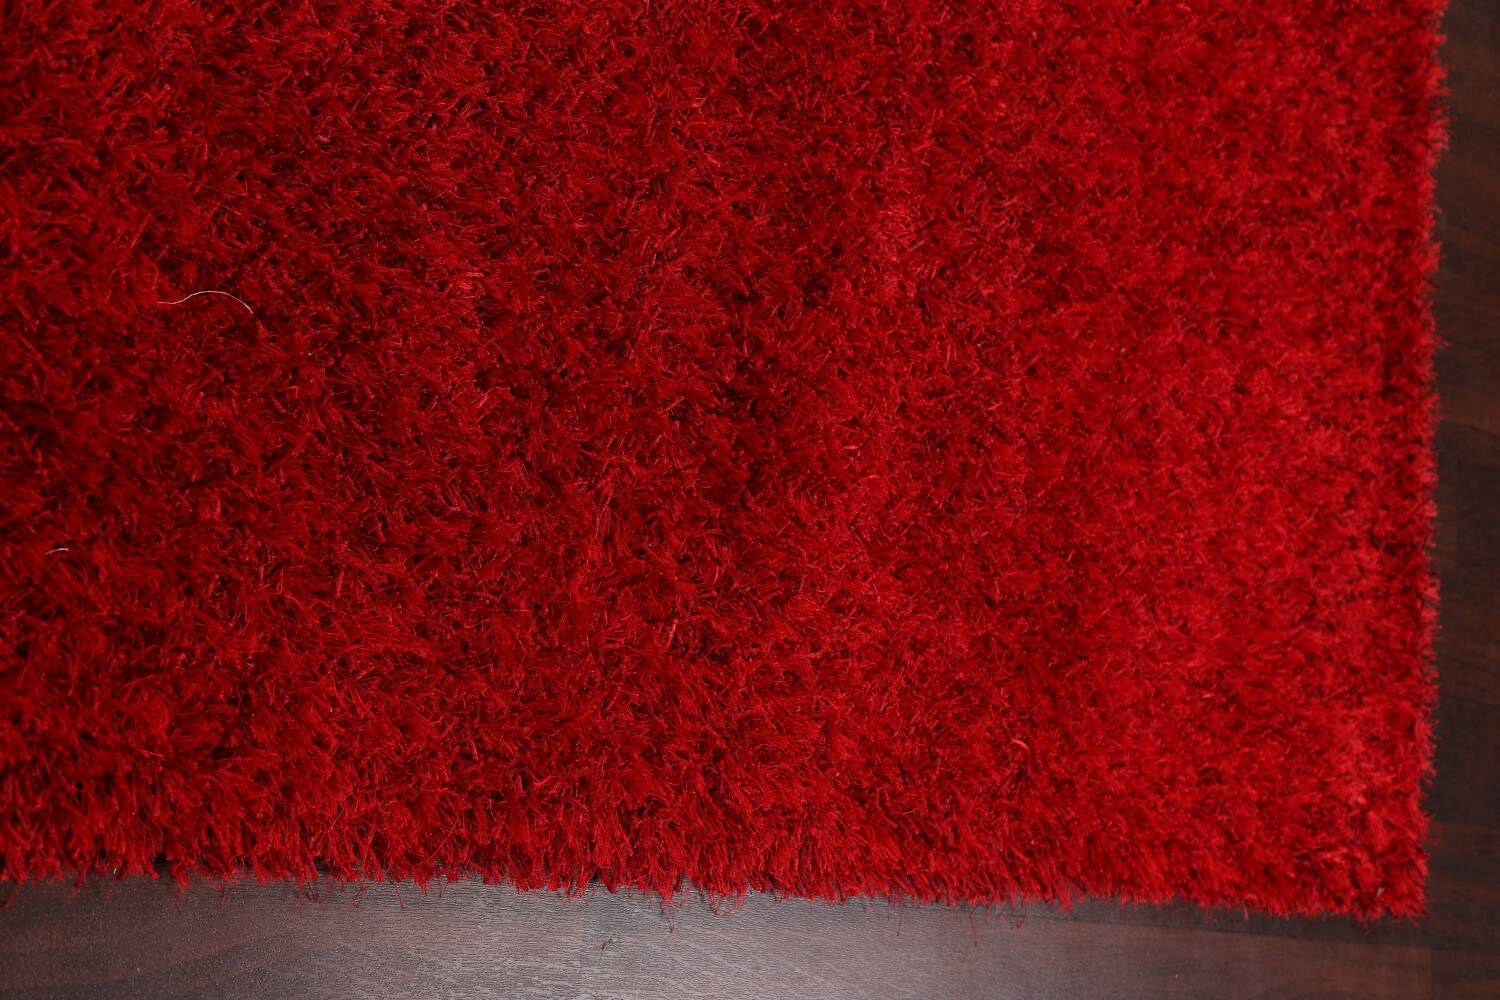 Red Plush Shaggy Area Rug 5x7 image 10